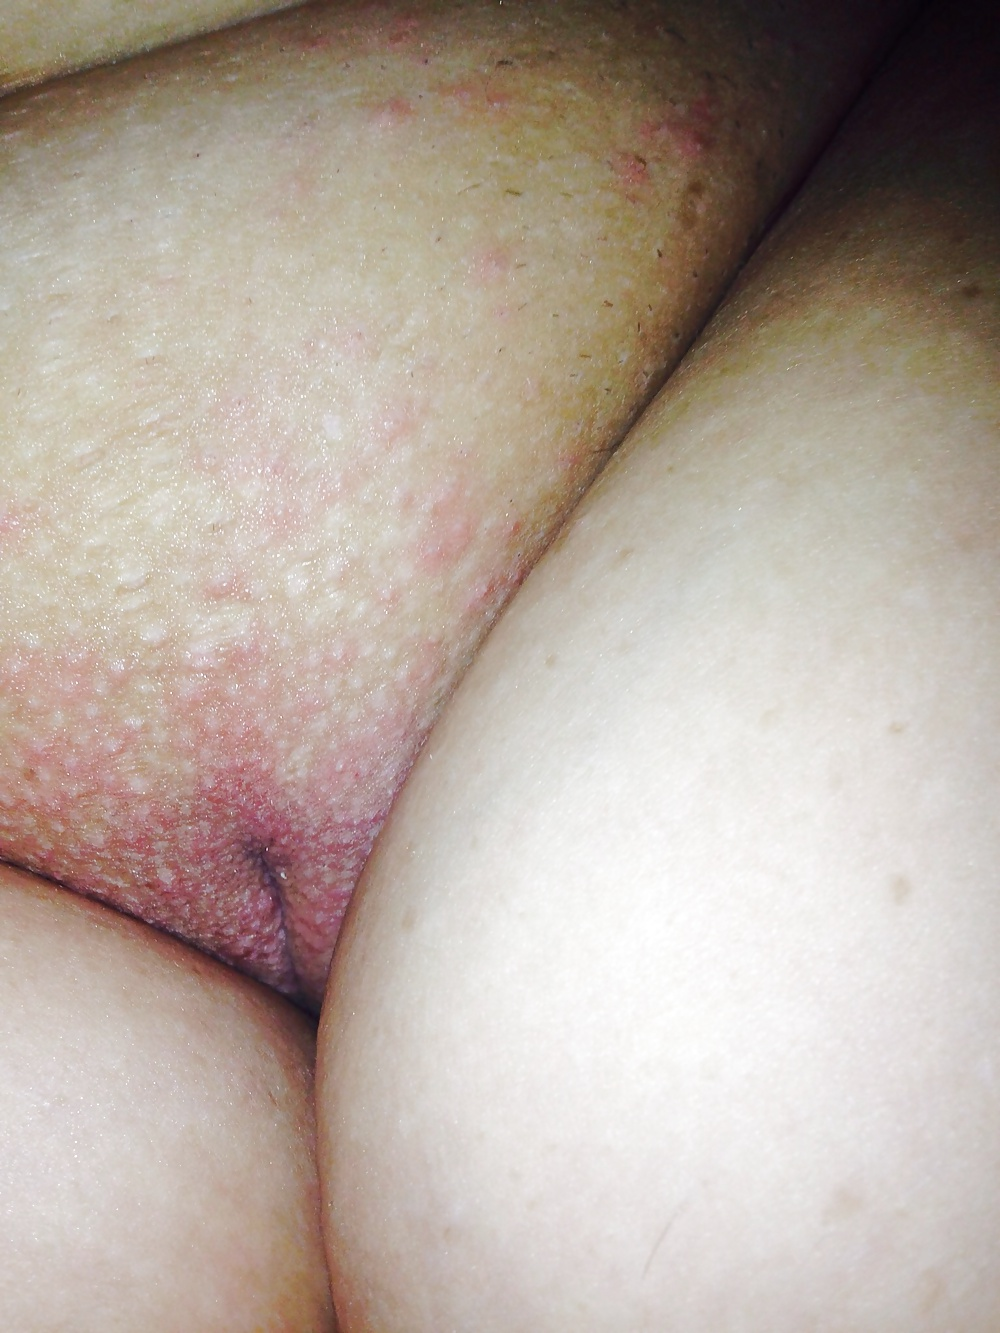 Ssbbw wife wildwood new jersey hotel aug 13 th week vacation - 1 part 3